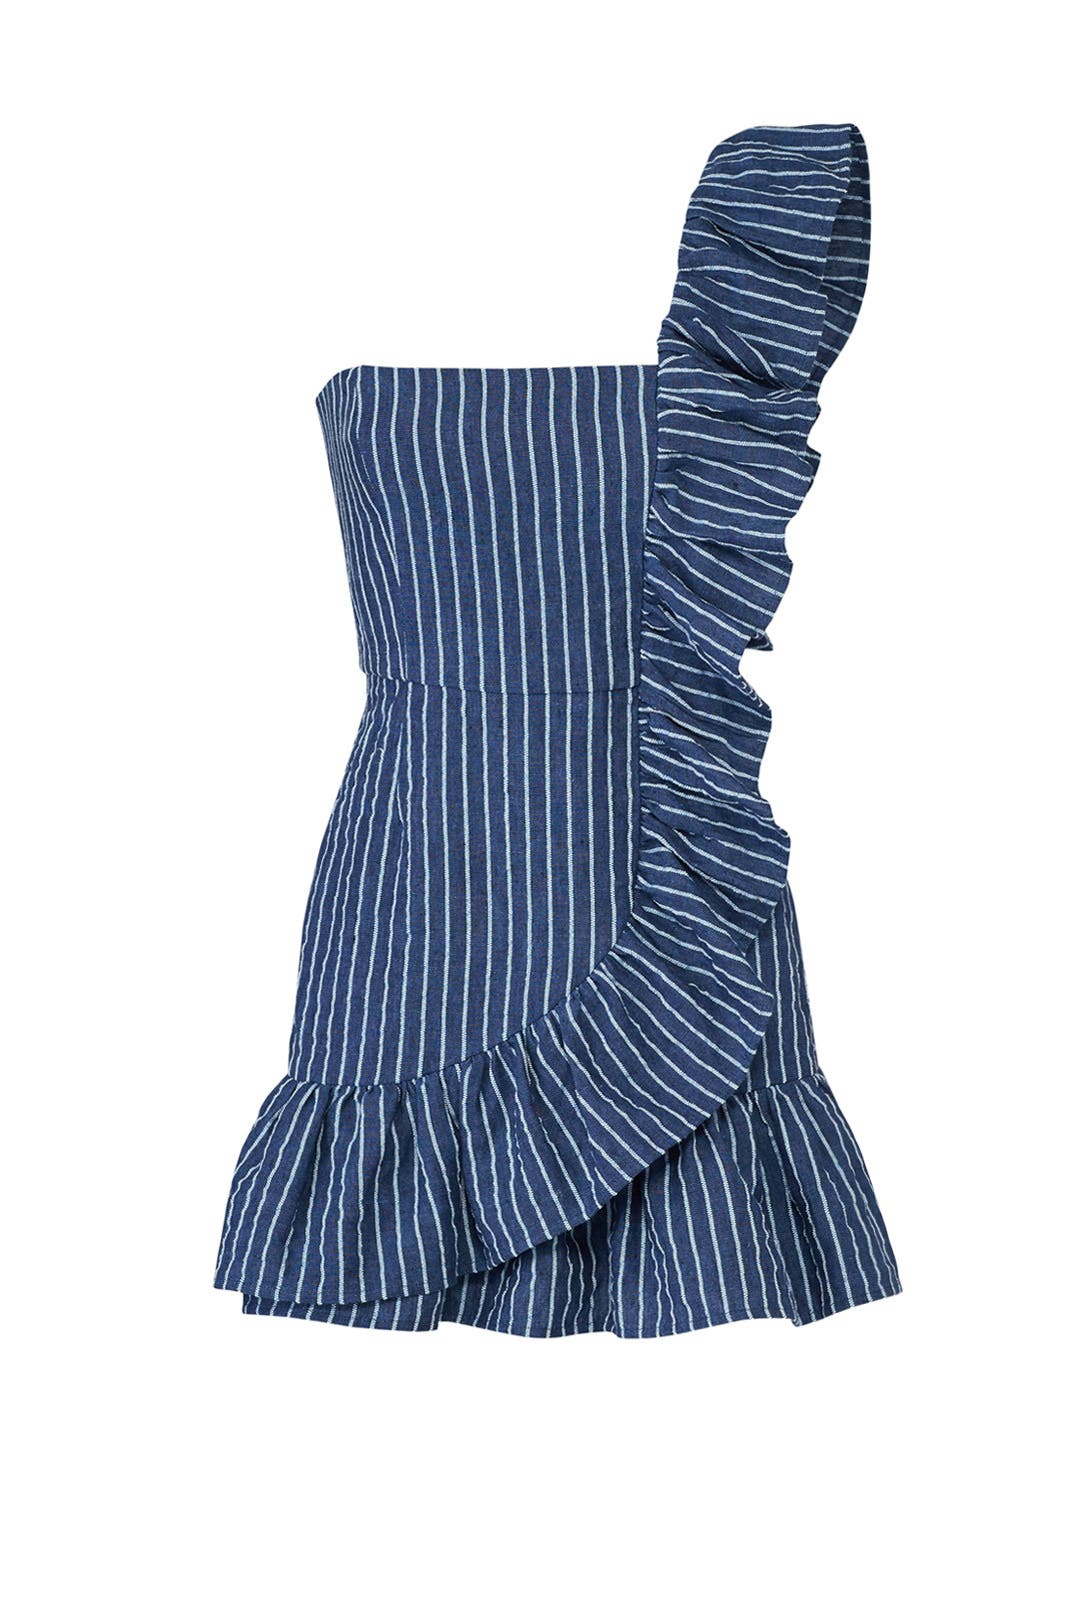 Konner Blue Stripe Dress by Alexis for $70 - $80   Rent the Runway